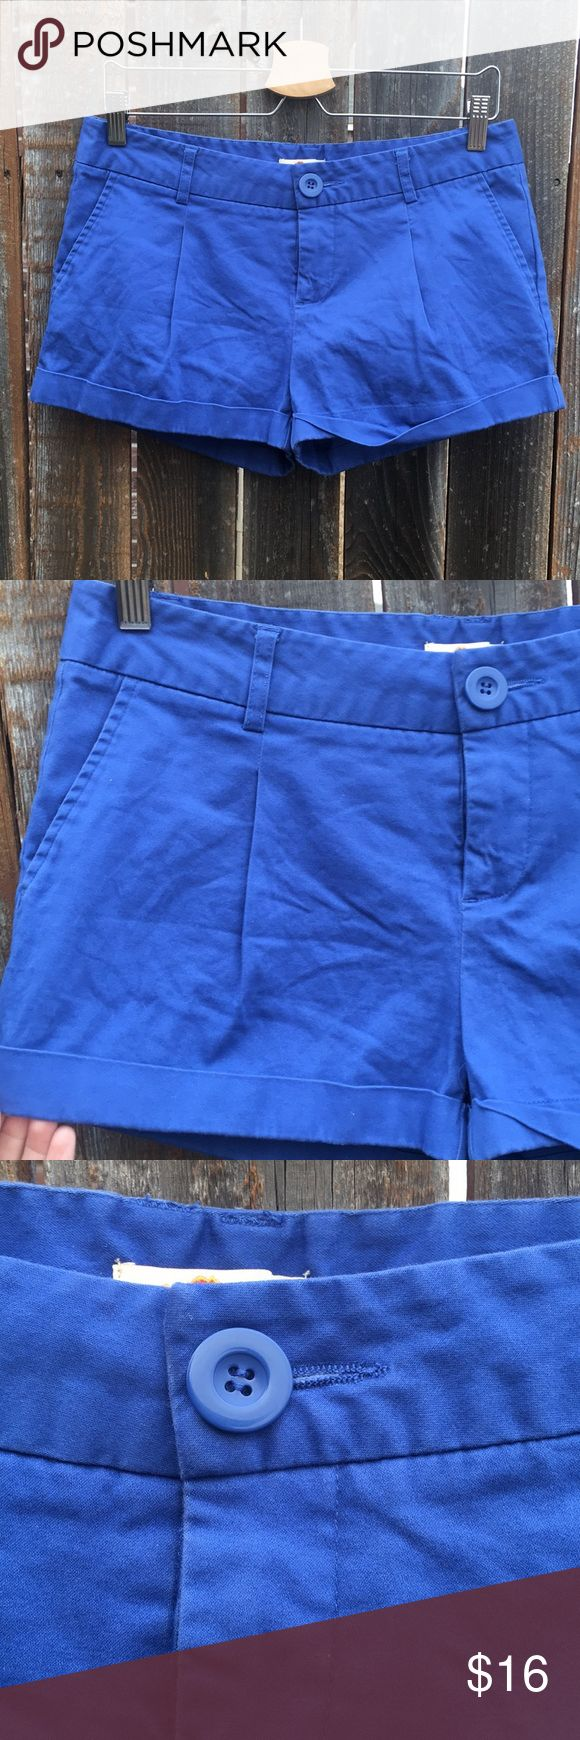 • [forever 21] blue chino like shorts • Super cute blue shorts from Forever 21. Size large. They are khaki like or chino like in material. Very thick and soft! Cuffed hem.. a little pleating on the front. Functioning pockets in the front and the back.   ❌NO TRADES ❌NO OFF APP PAYMENT 🚭SMOKE FREE HOME 🐶🐶 TWO PUPS Forever 21 Shorts